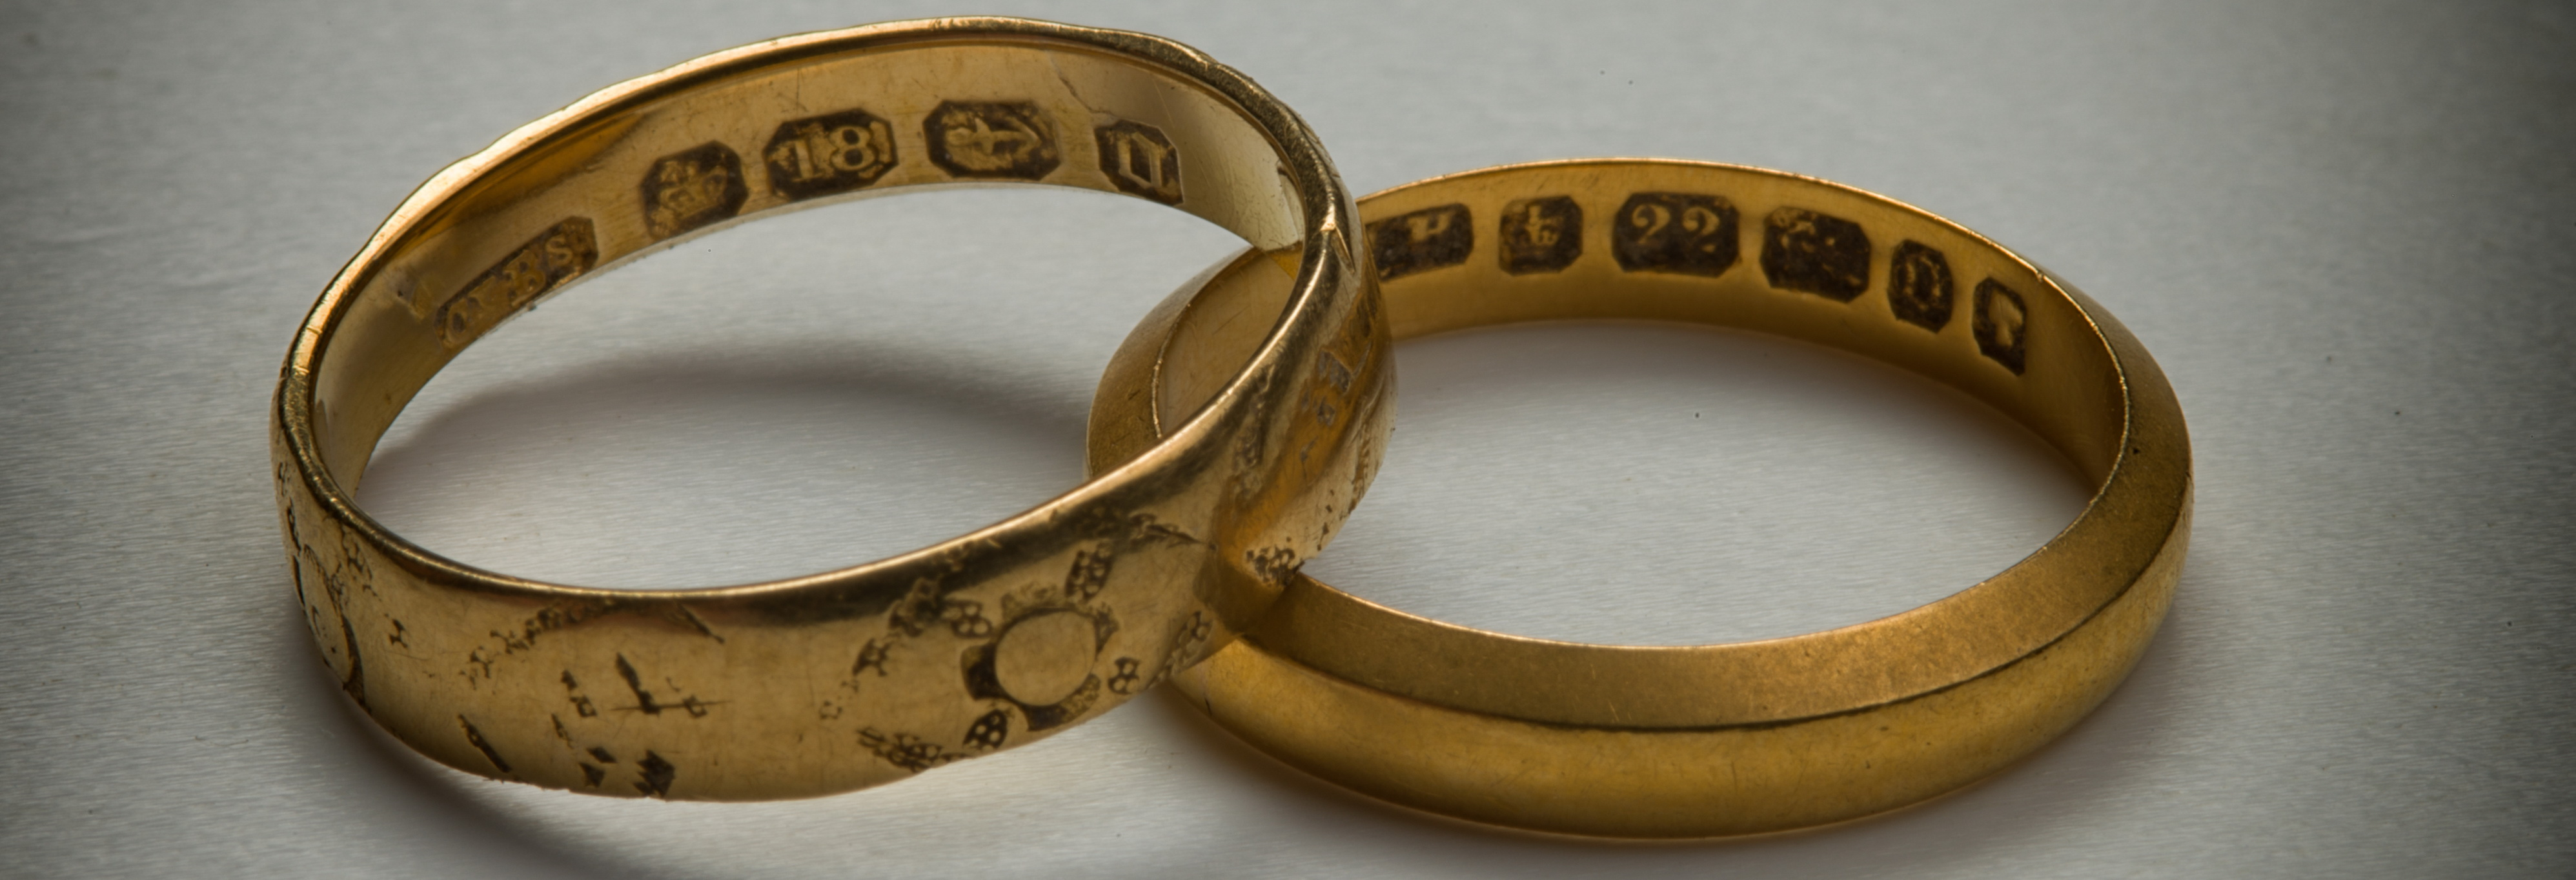 Grace Hutton's wedding rings